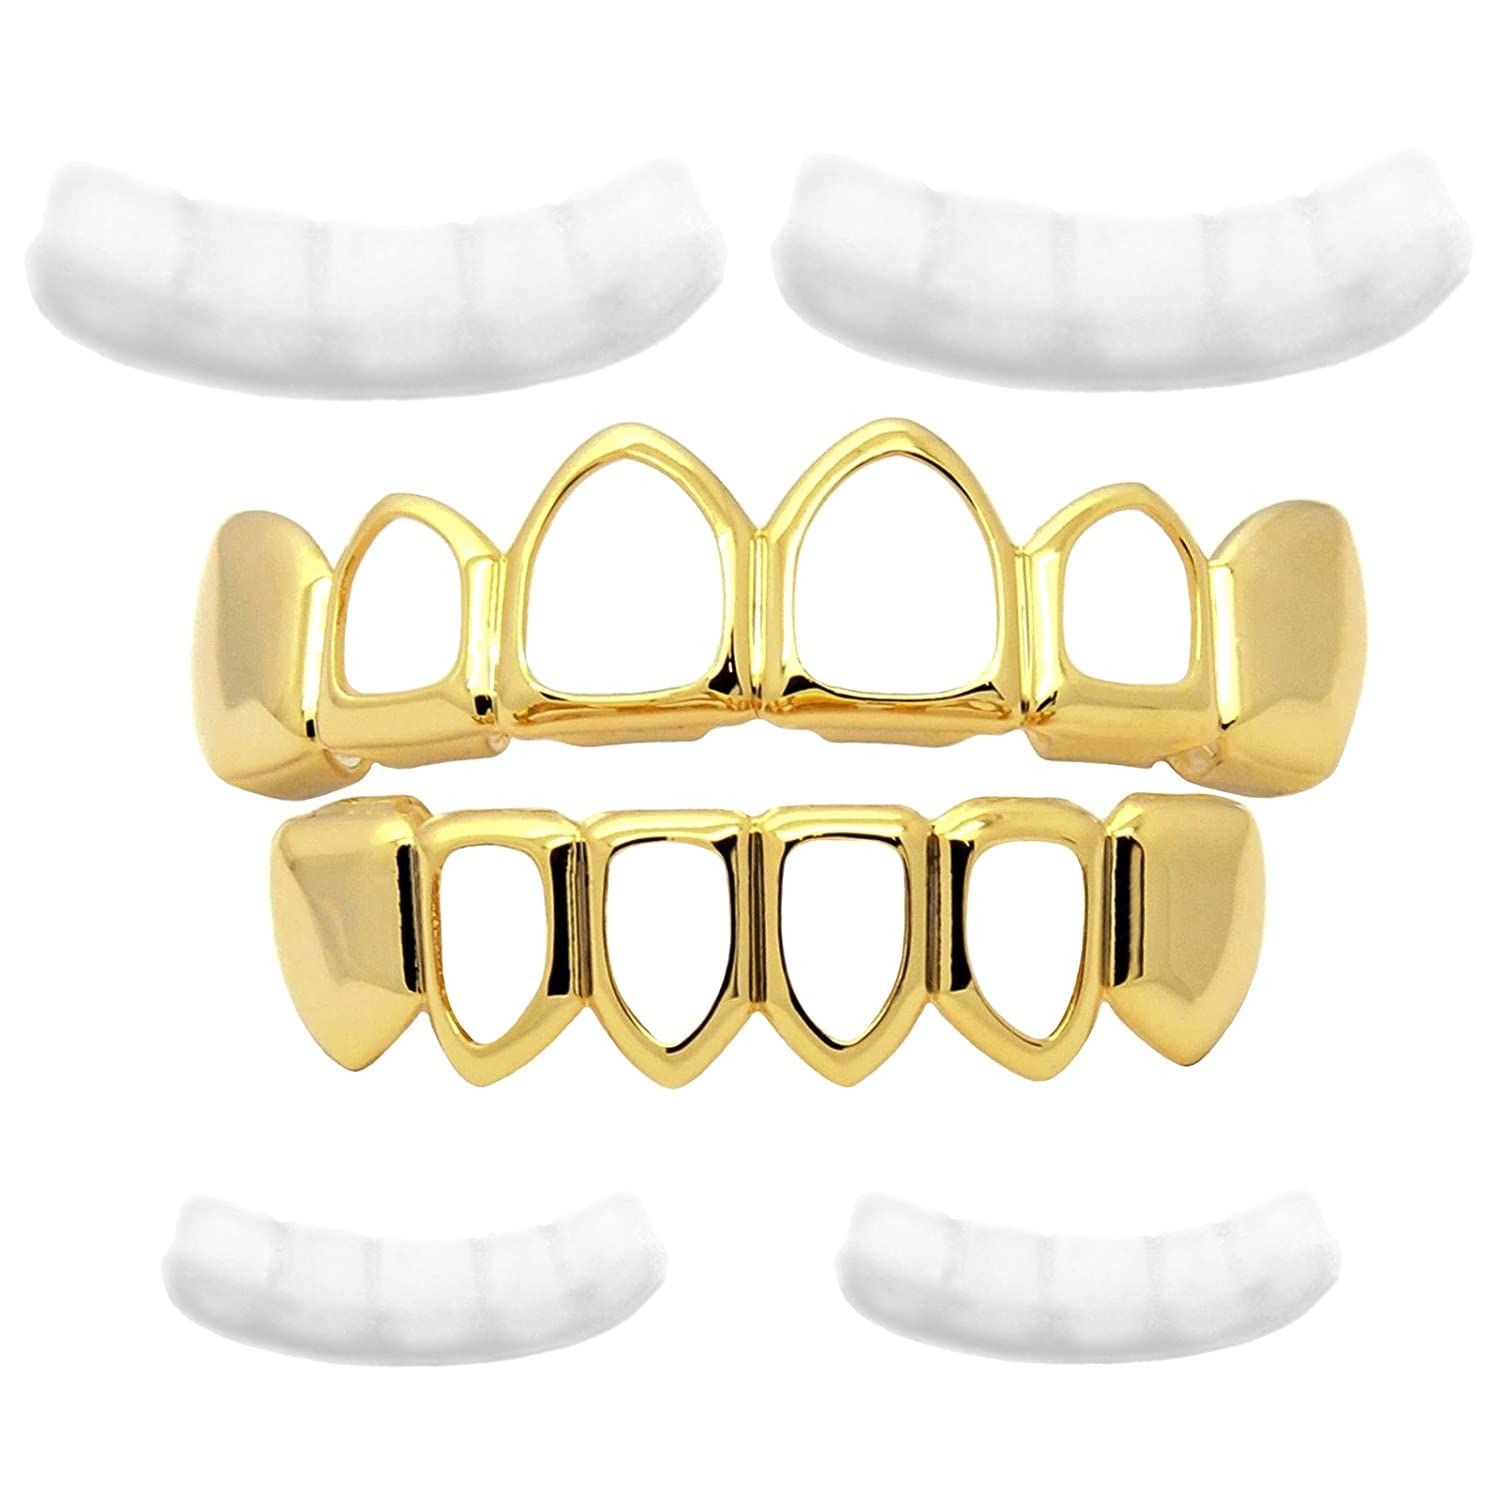 Men's 14K Gold Tone HIP HOP Hollow Top & Bottom Row HIGH QUALITY Teeth Grillz L & L Nation GPHTBG